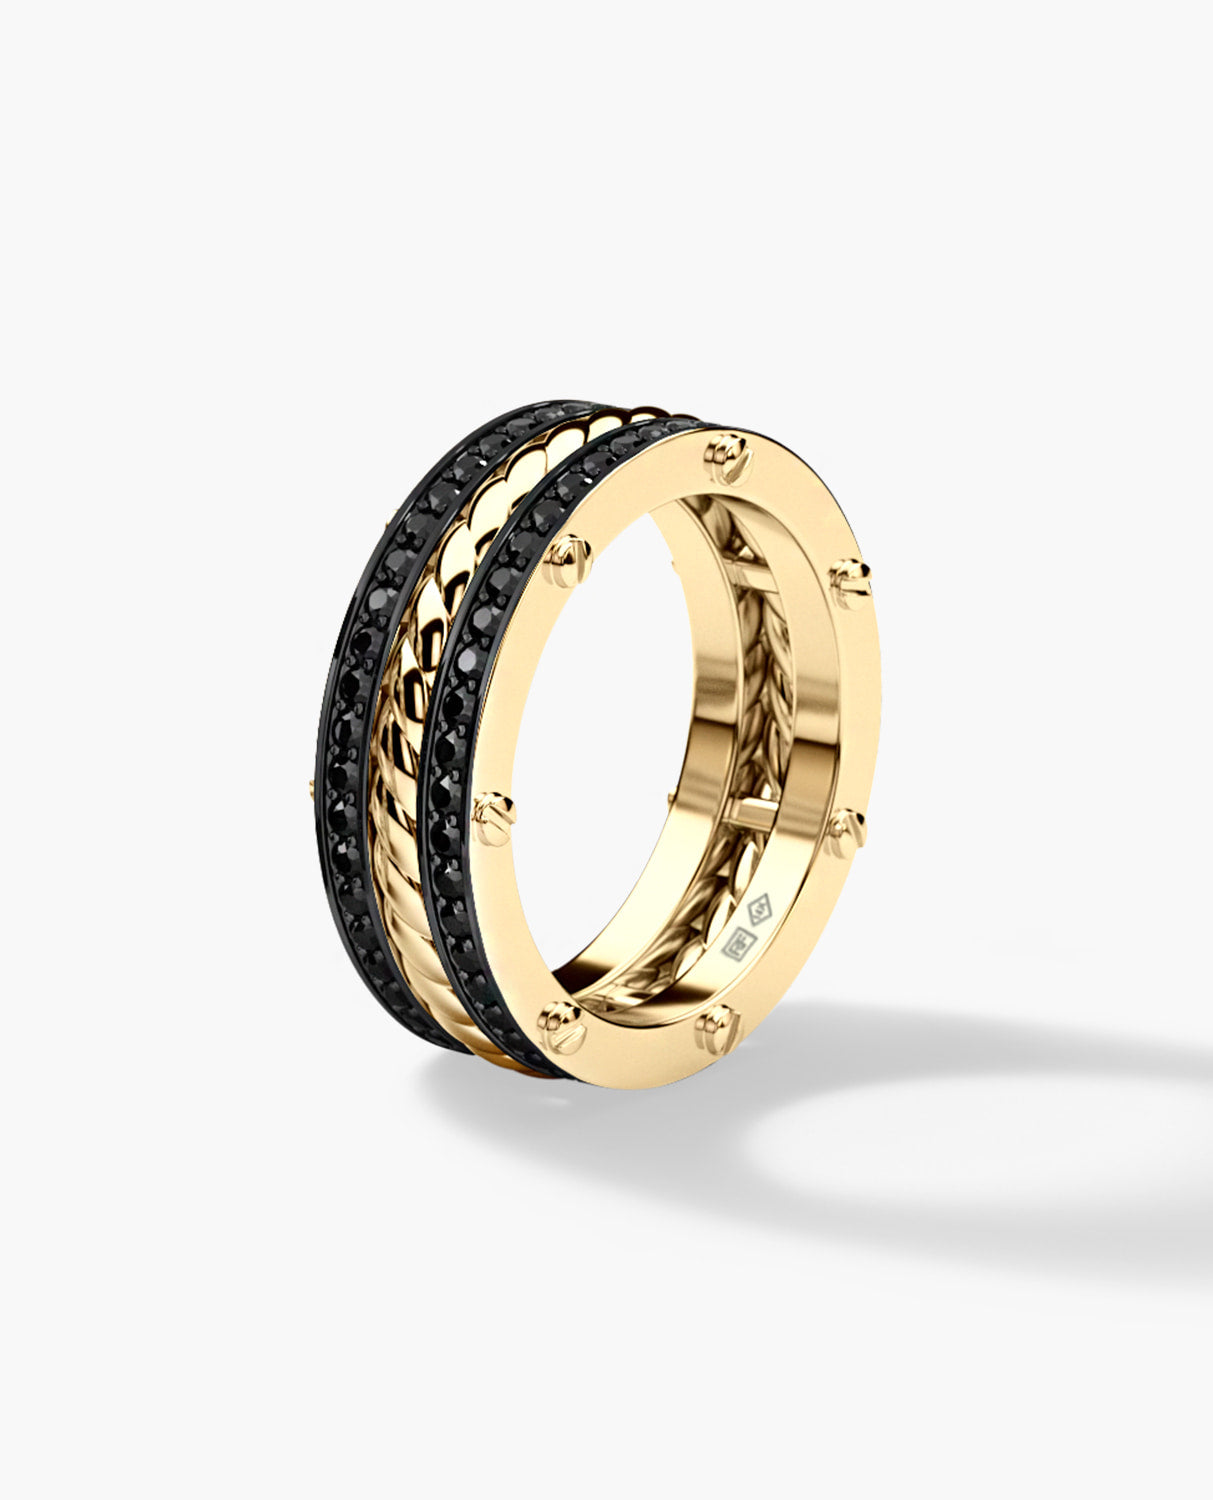 ROPES Gold Wedding Band with 0.70ct Black Diamonds - Ring 2